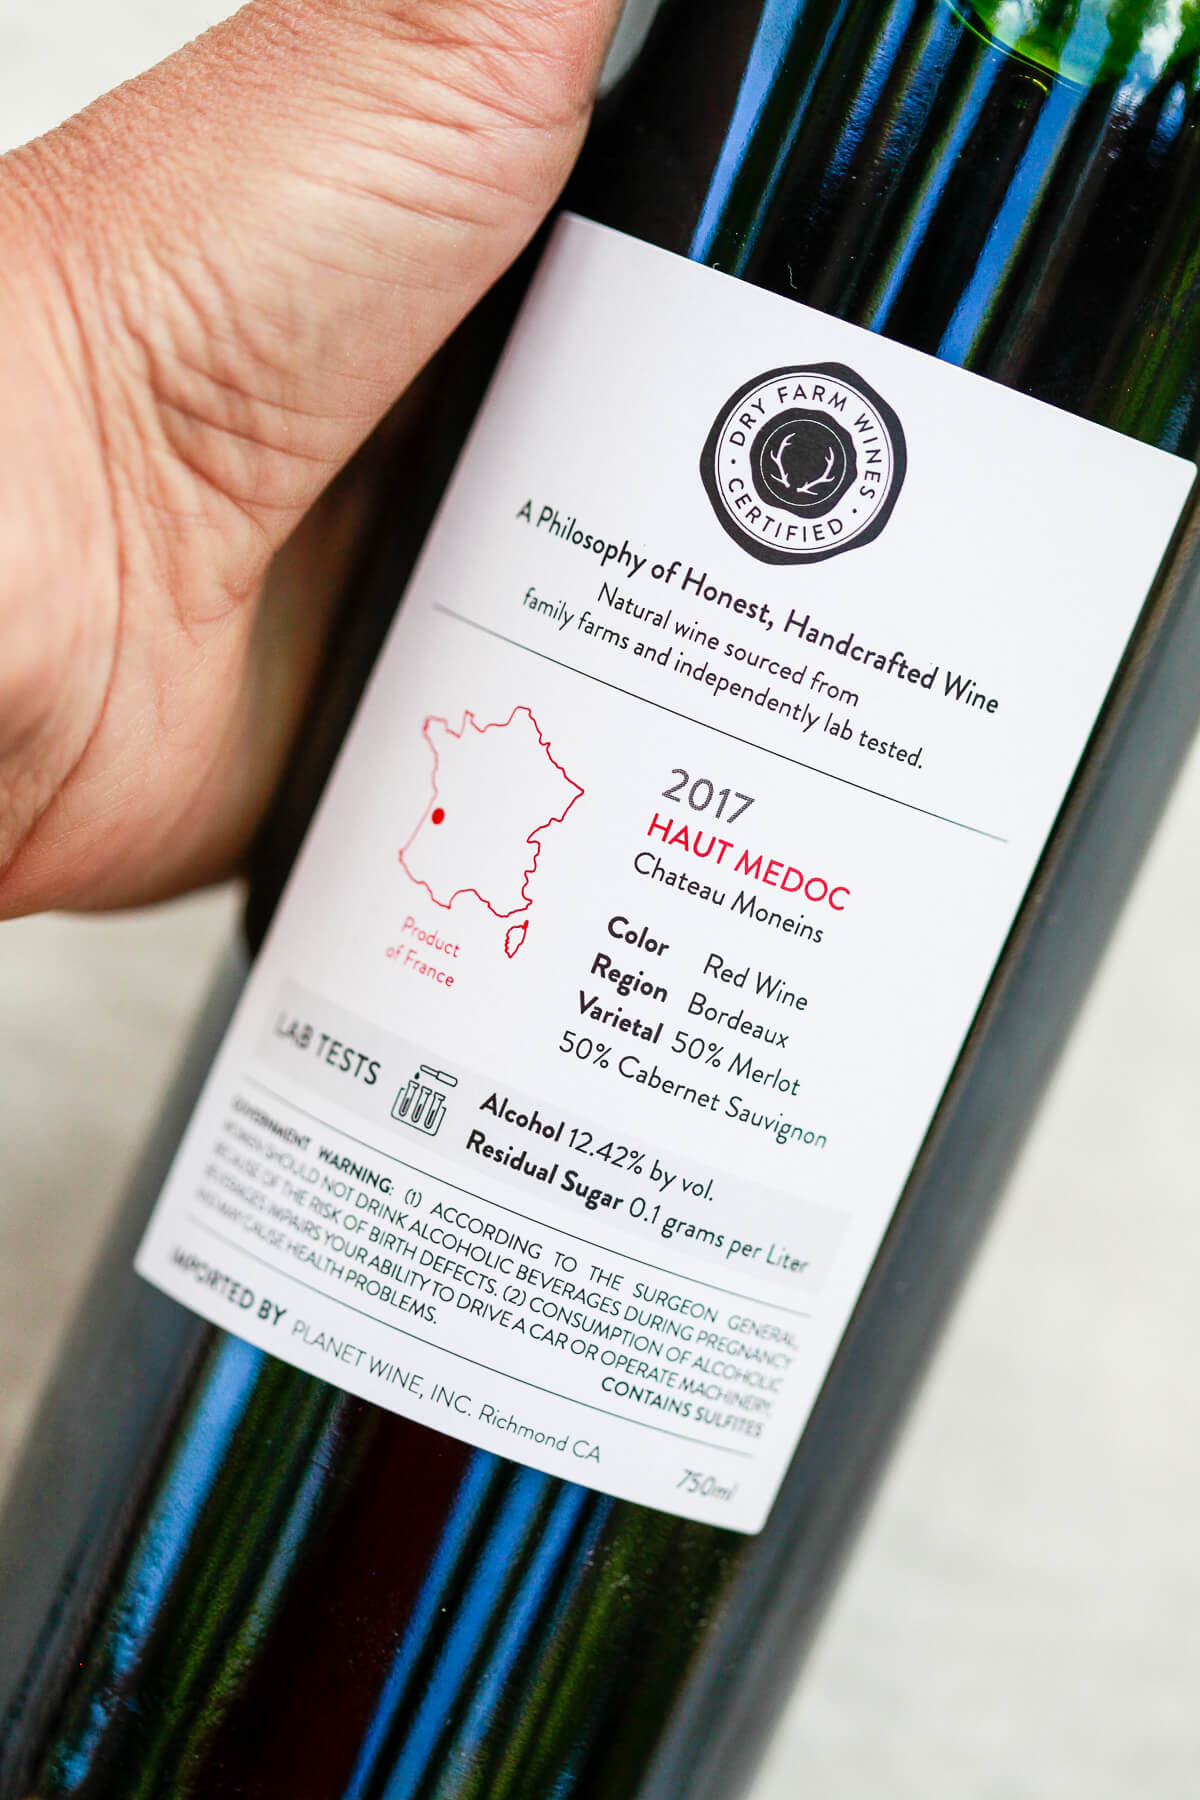 The back of a Dry Farm Wines bottle of read wine. The label shows that this bottle was from 2017 and made in Medoc, France. It also shows the alcohol percentage and residual sugar.